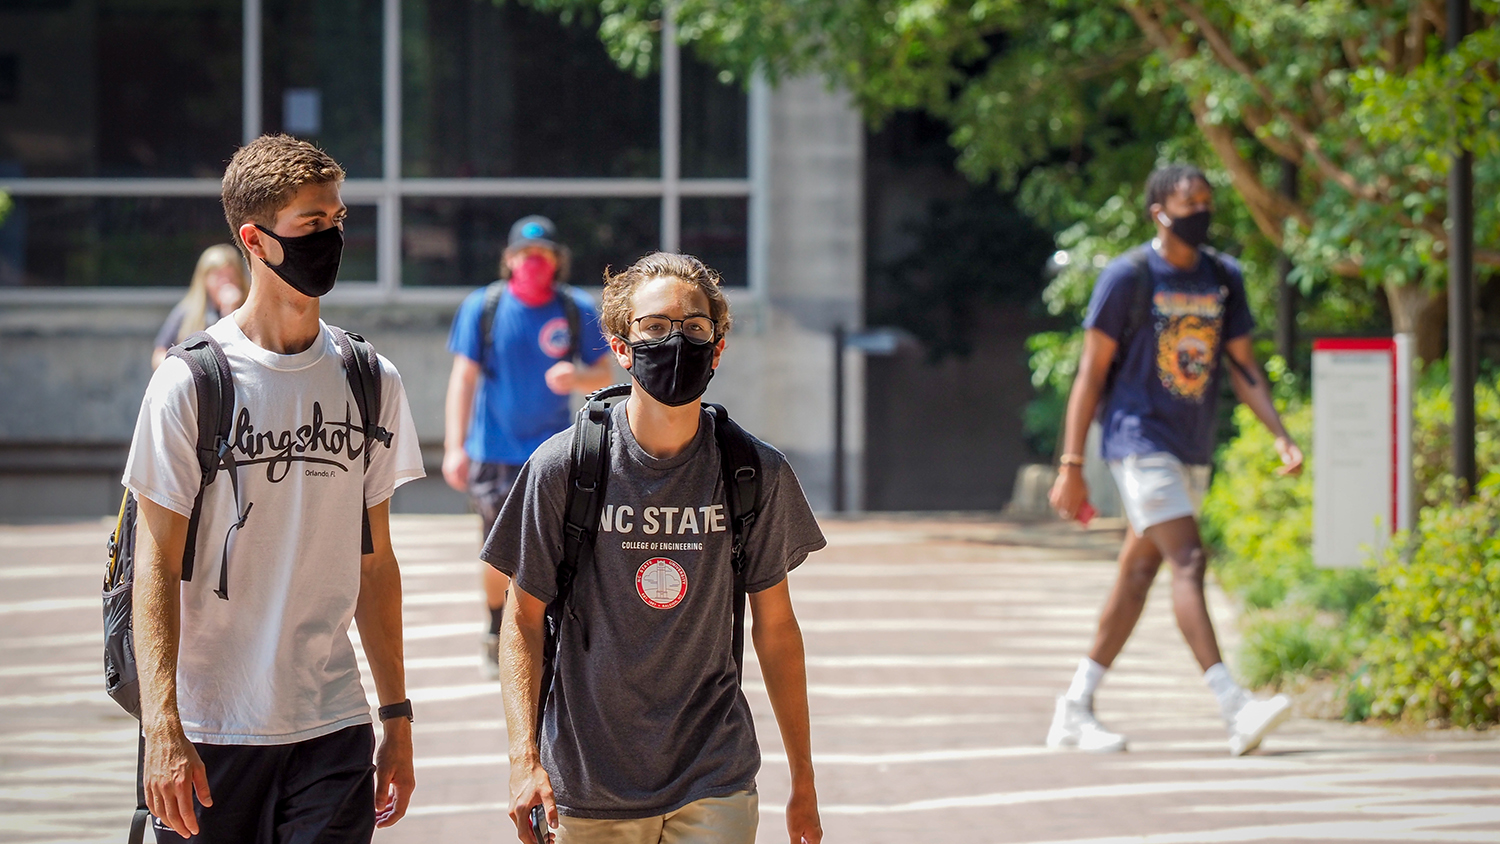 NC State students walking on campus